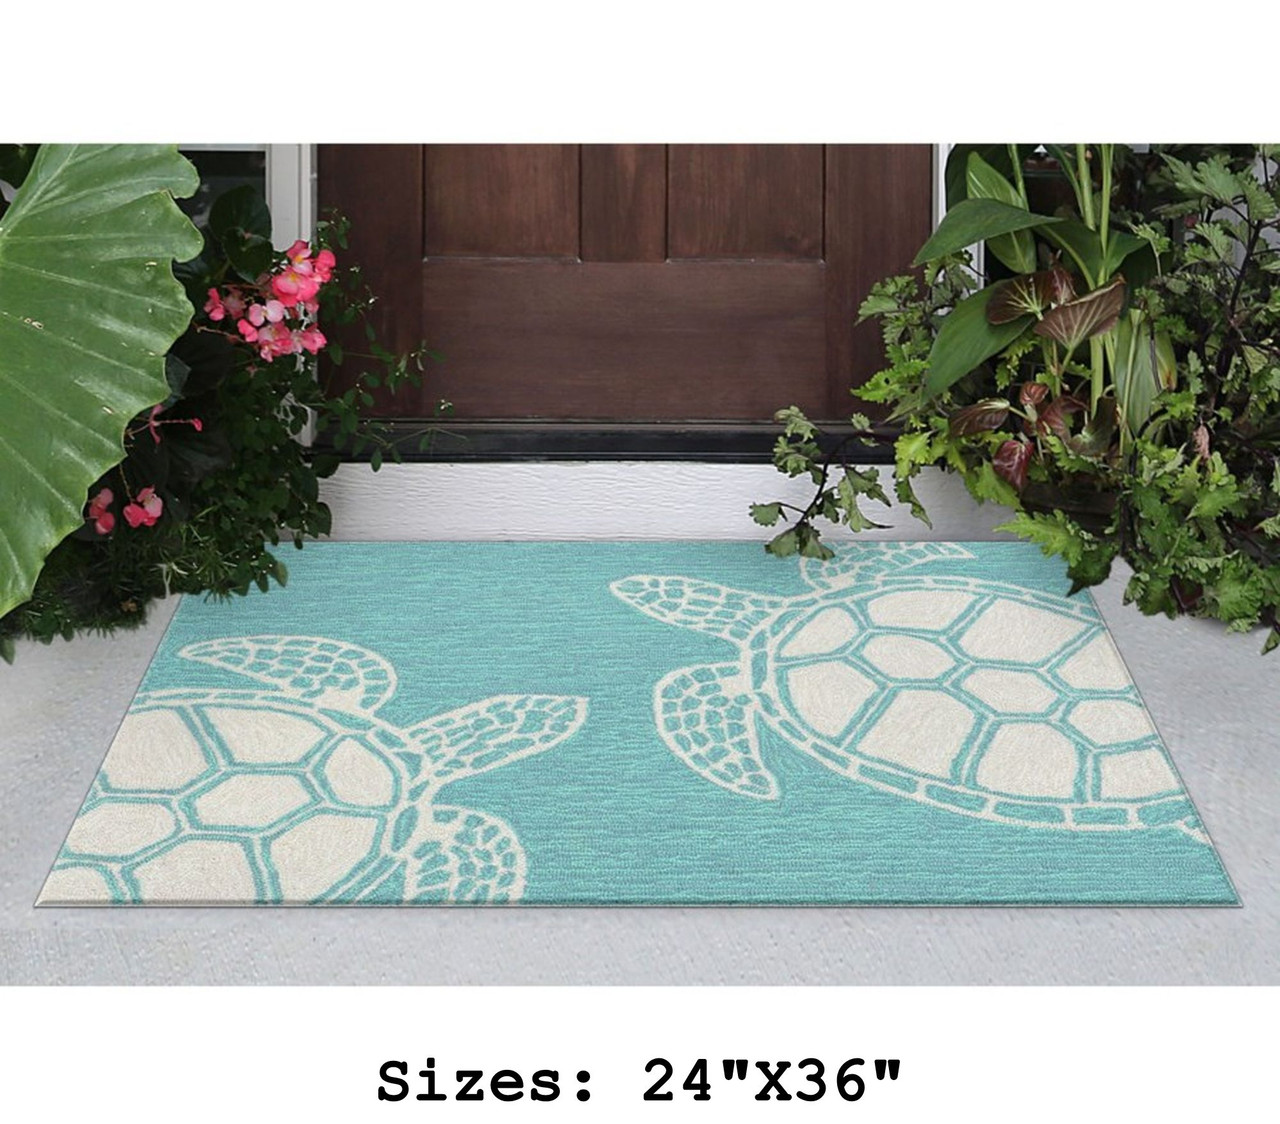 Capri Turtle Indoor/Outdoor Rug - Aqua - Small Rectangle Lifestyle Available in 6 Sizes